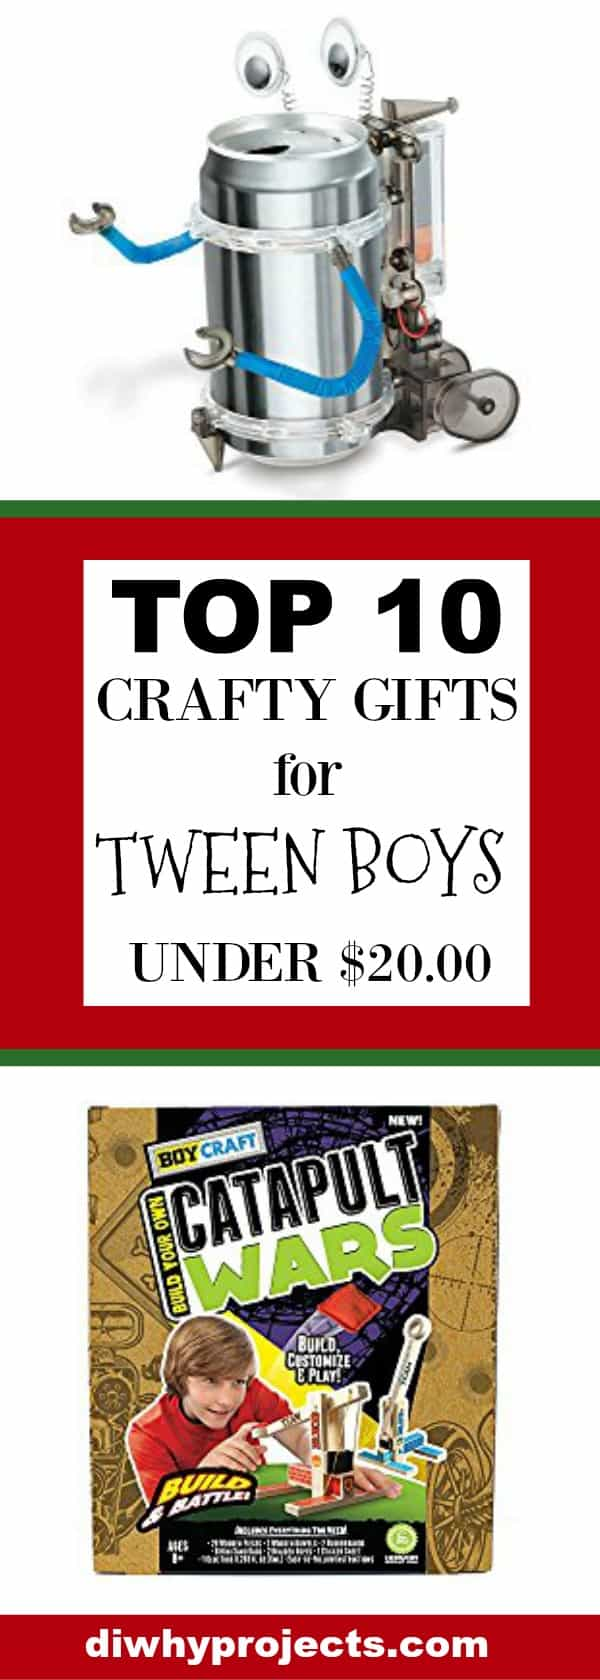 Top 10 Crafty Gifts